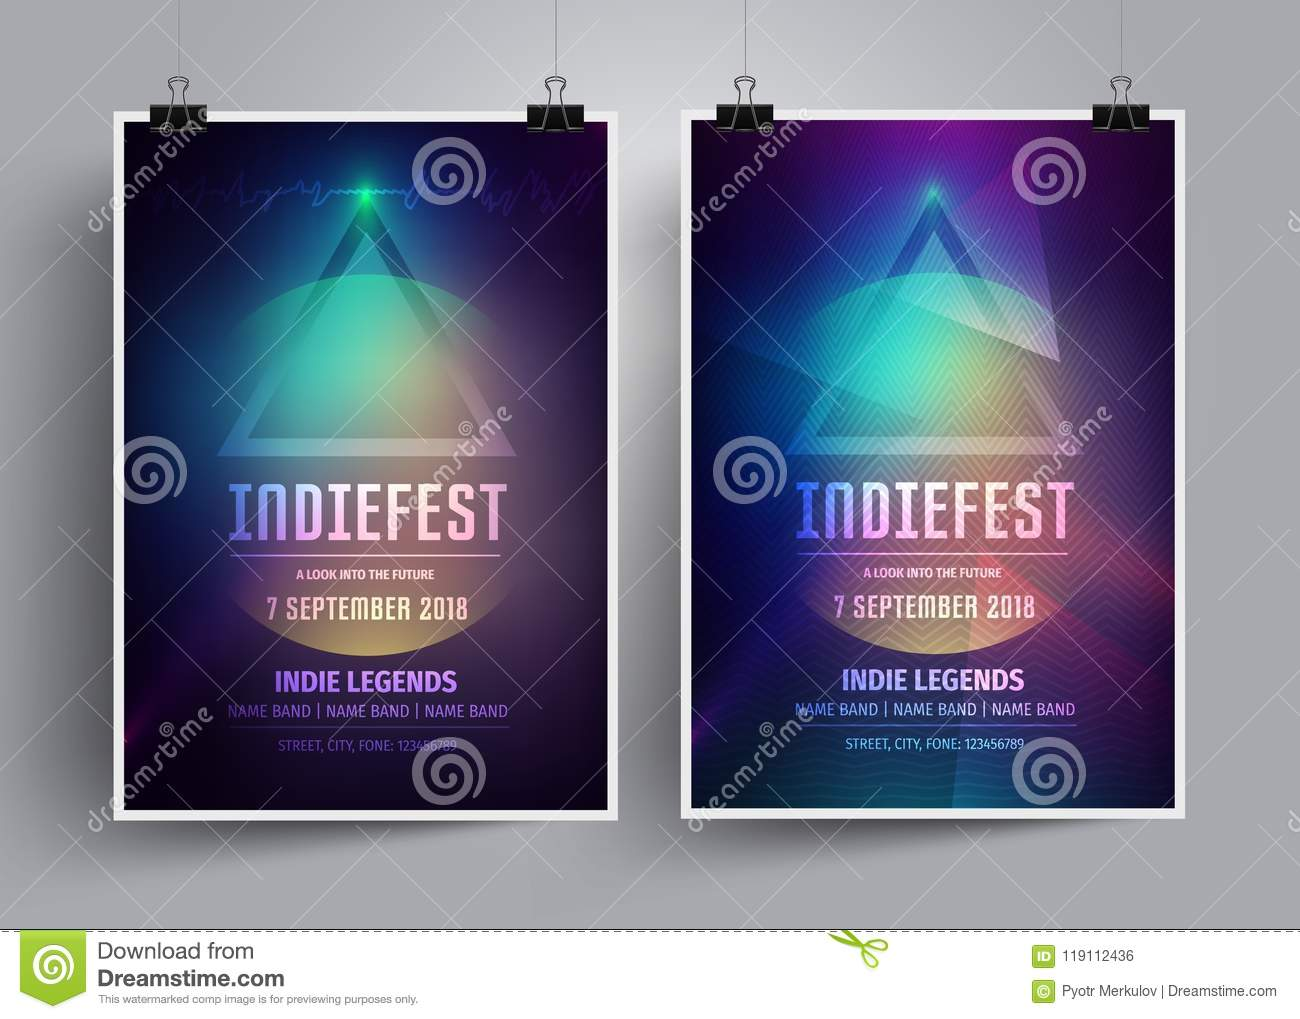 Set Of Mockup Poster Templates Or Flyers For An Indie Rock Concert